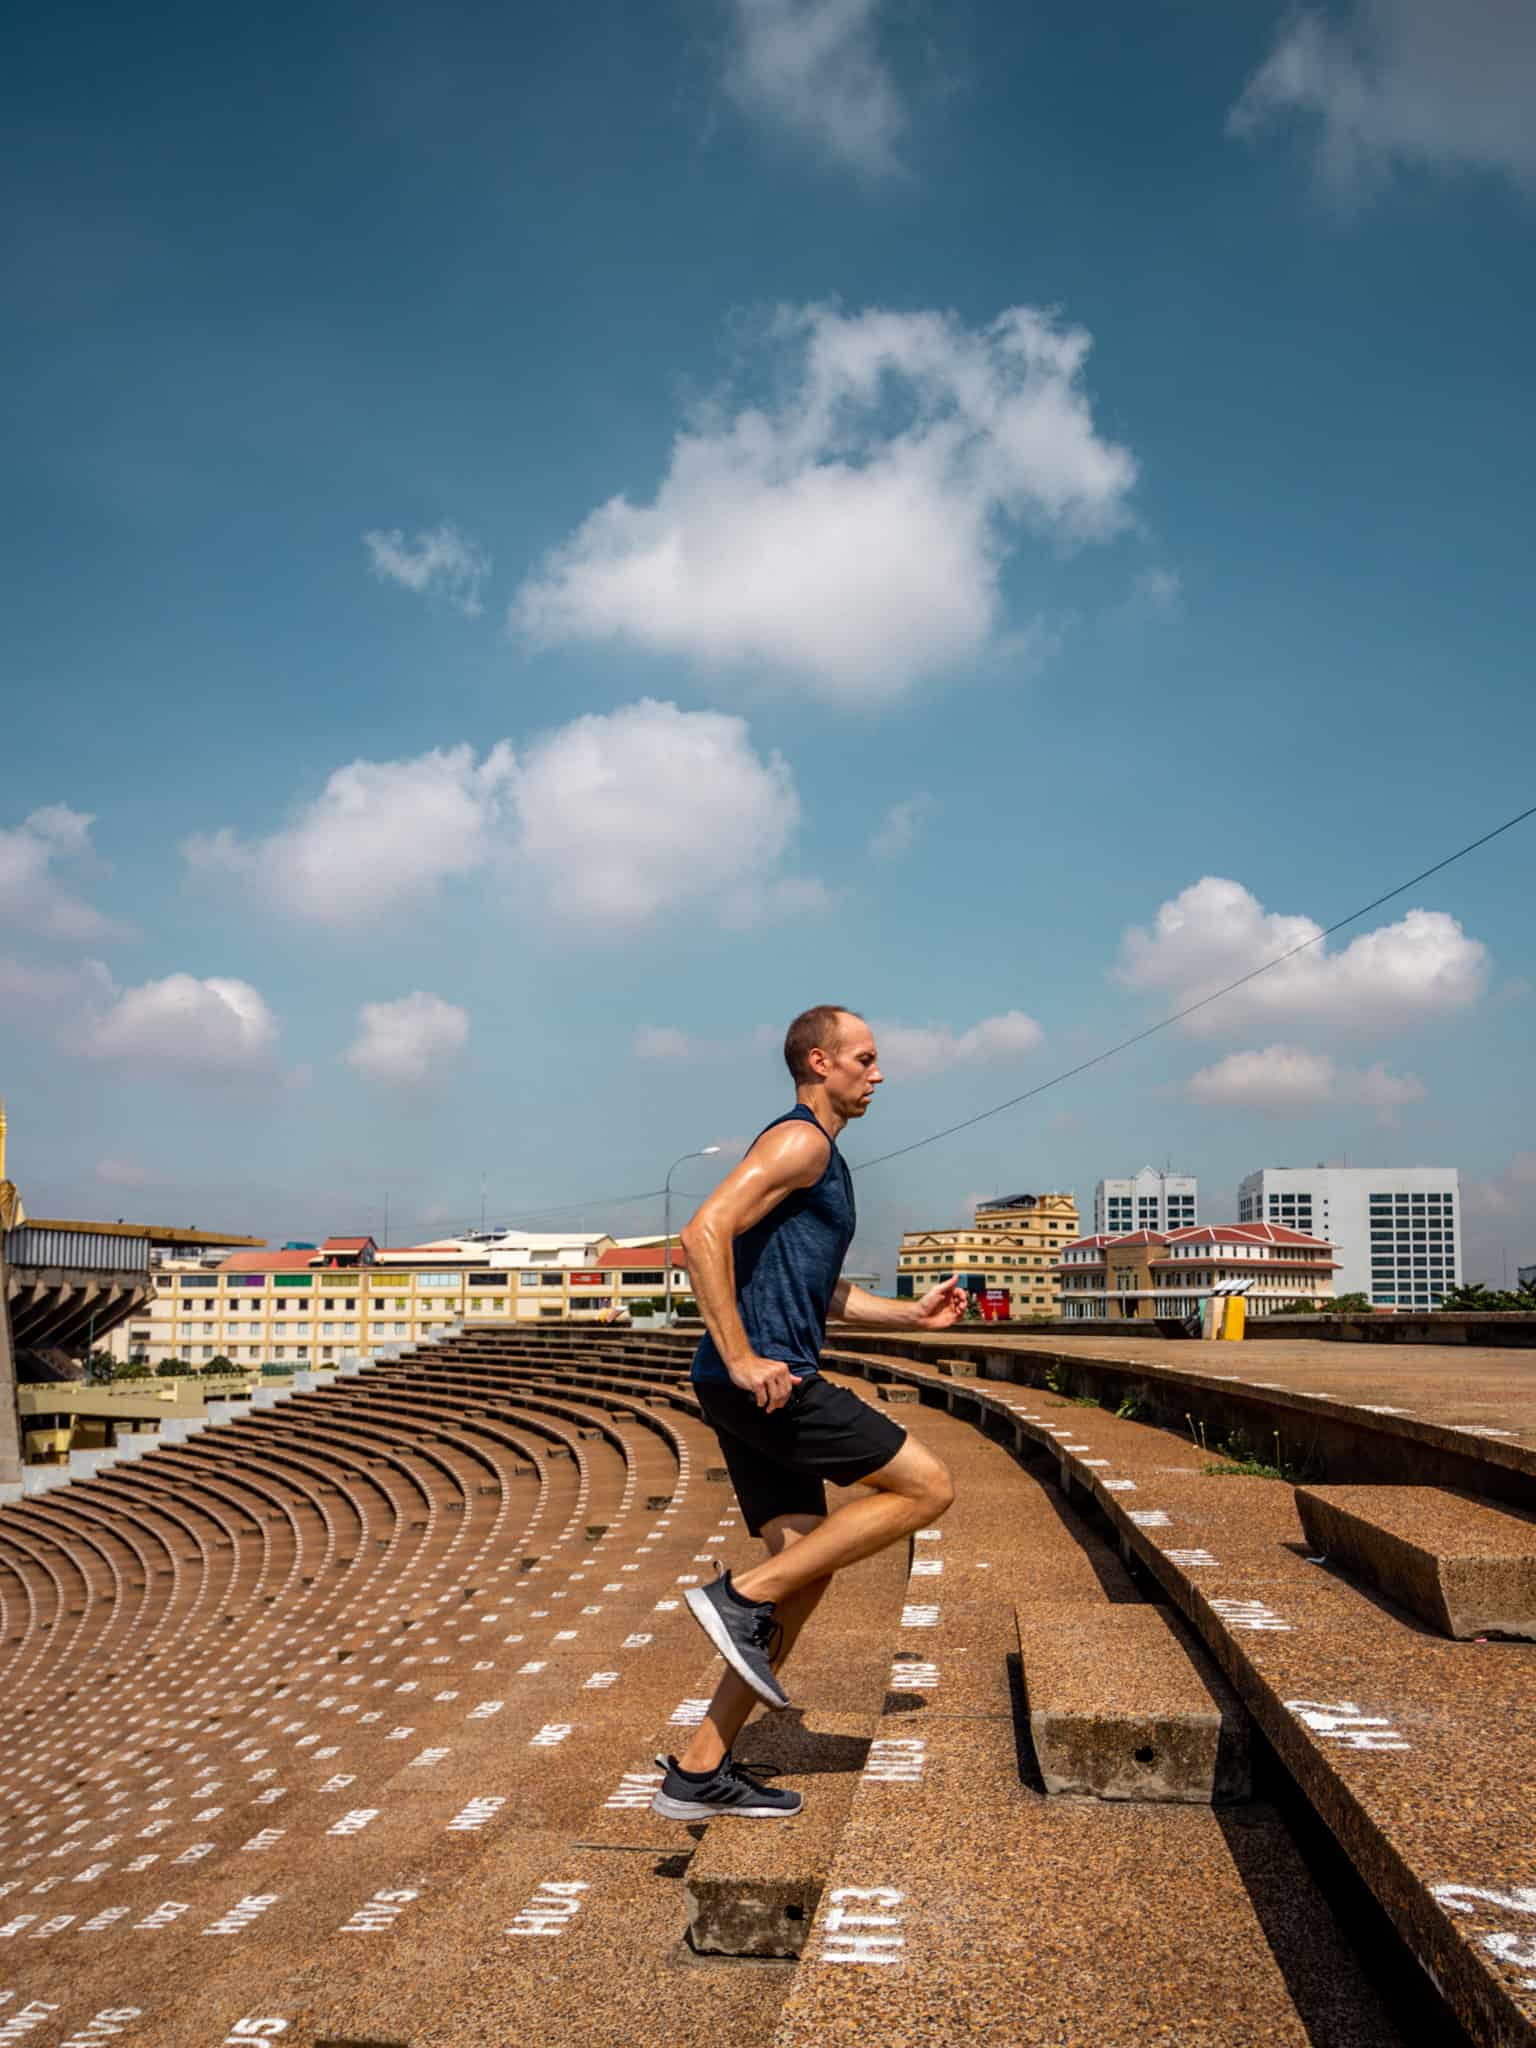 Nate running up steps at Olympic Stadium - Decathalon Gear